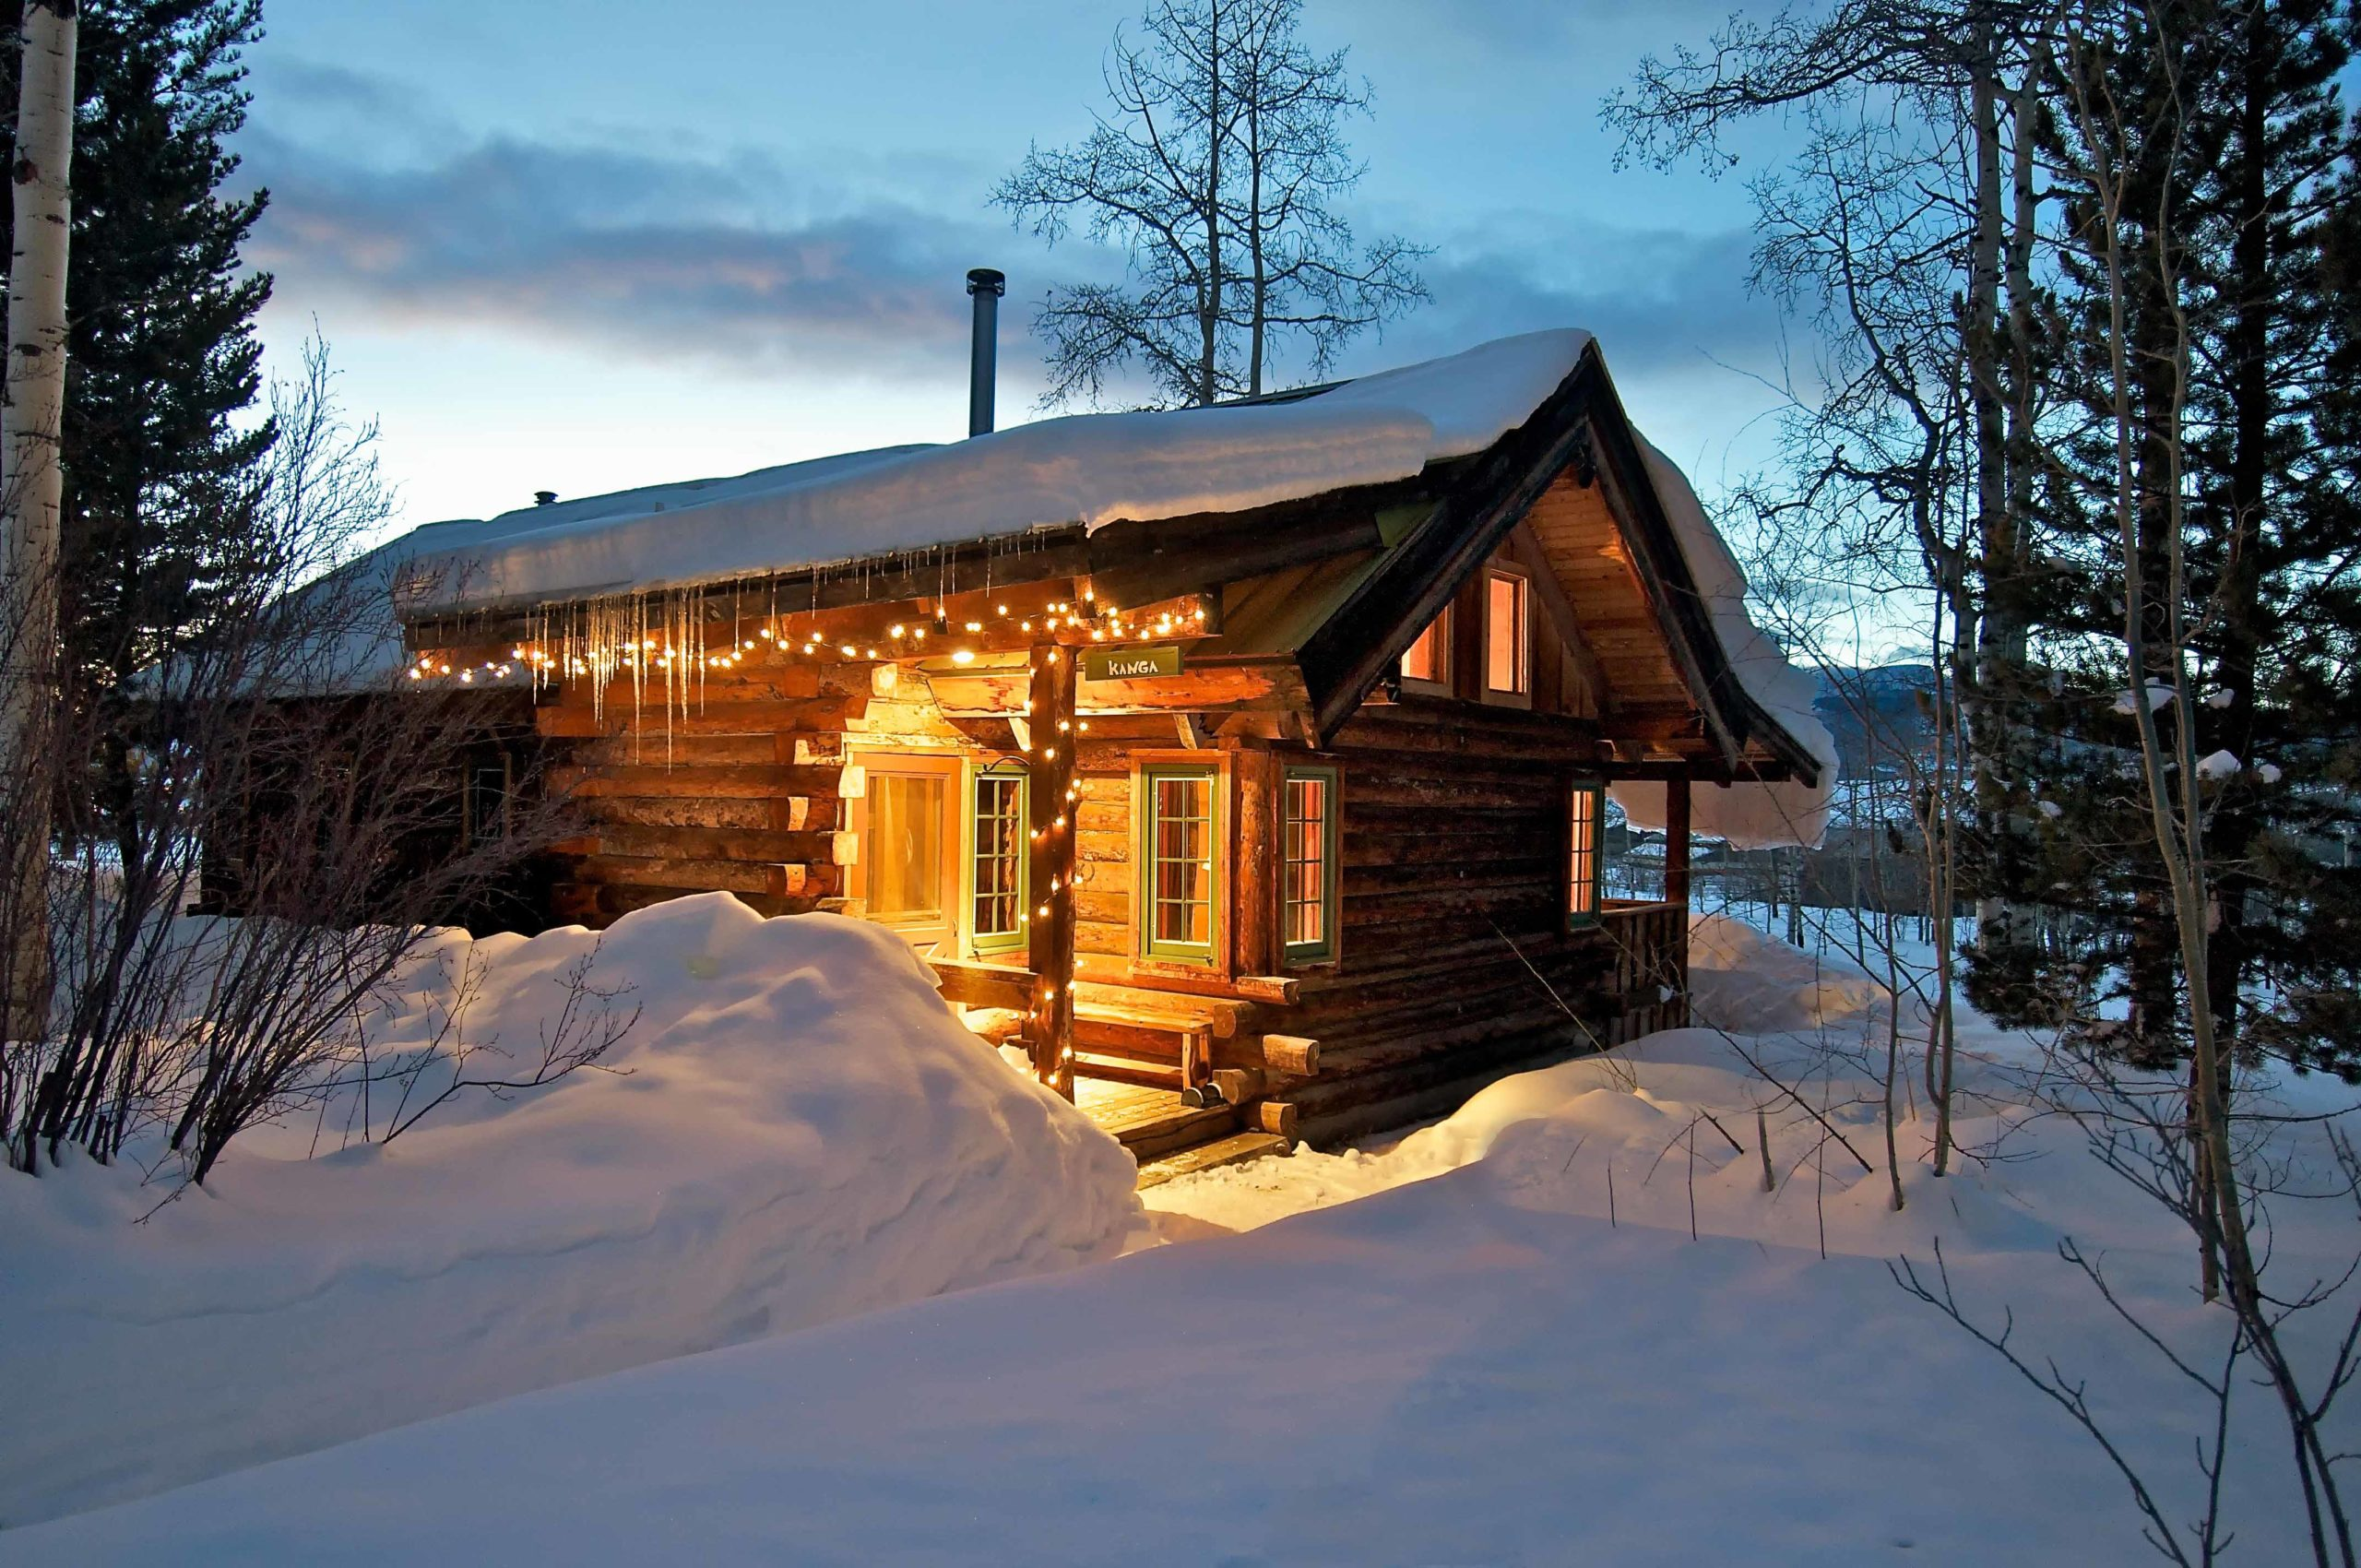 Stay at in a cabin at the Home Ranch during the winter.